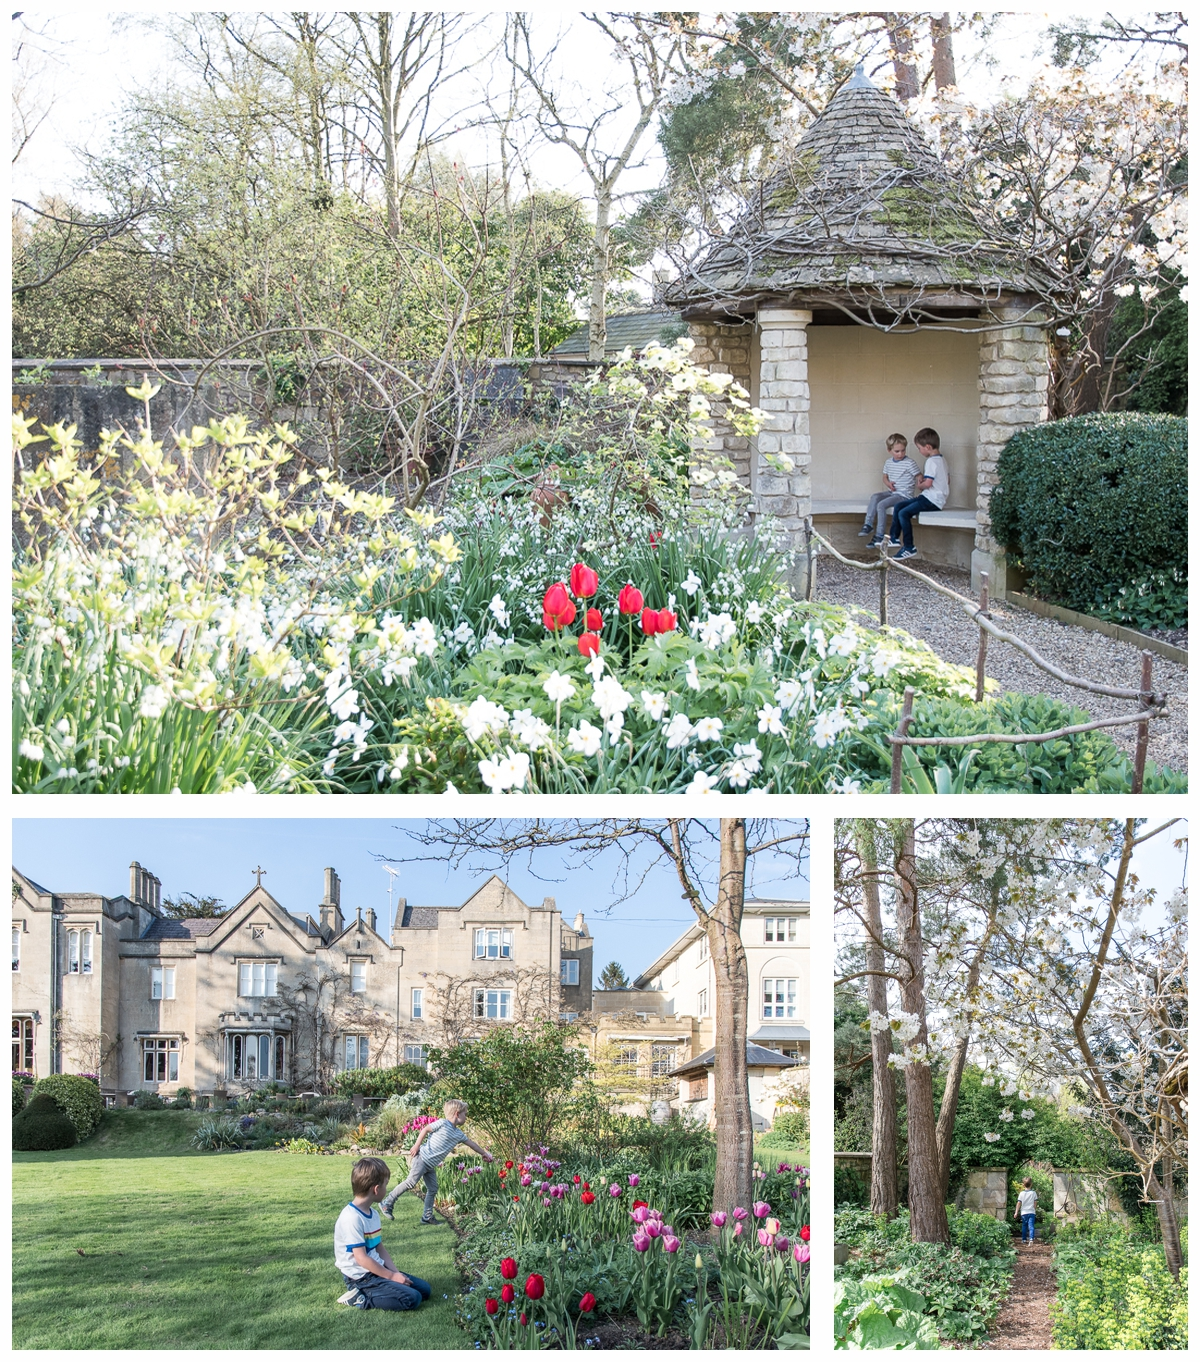 Brownsword Hotels Bath Priory, stunning gardens